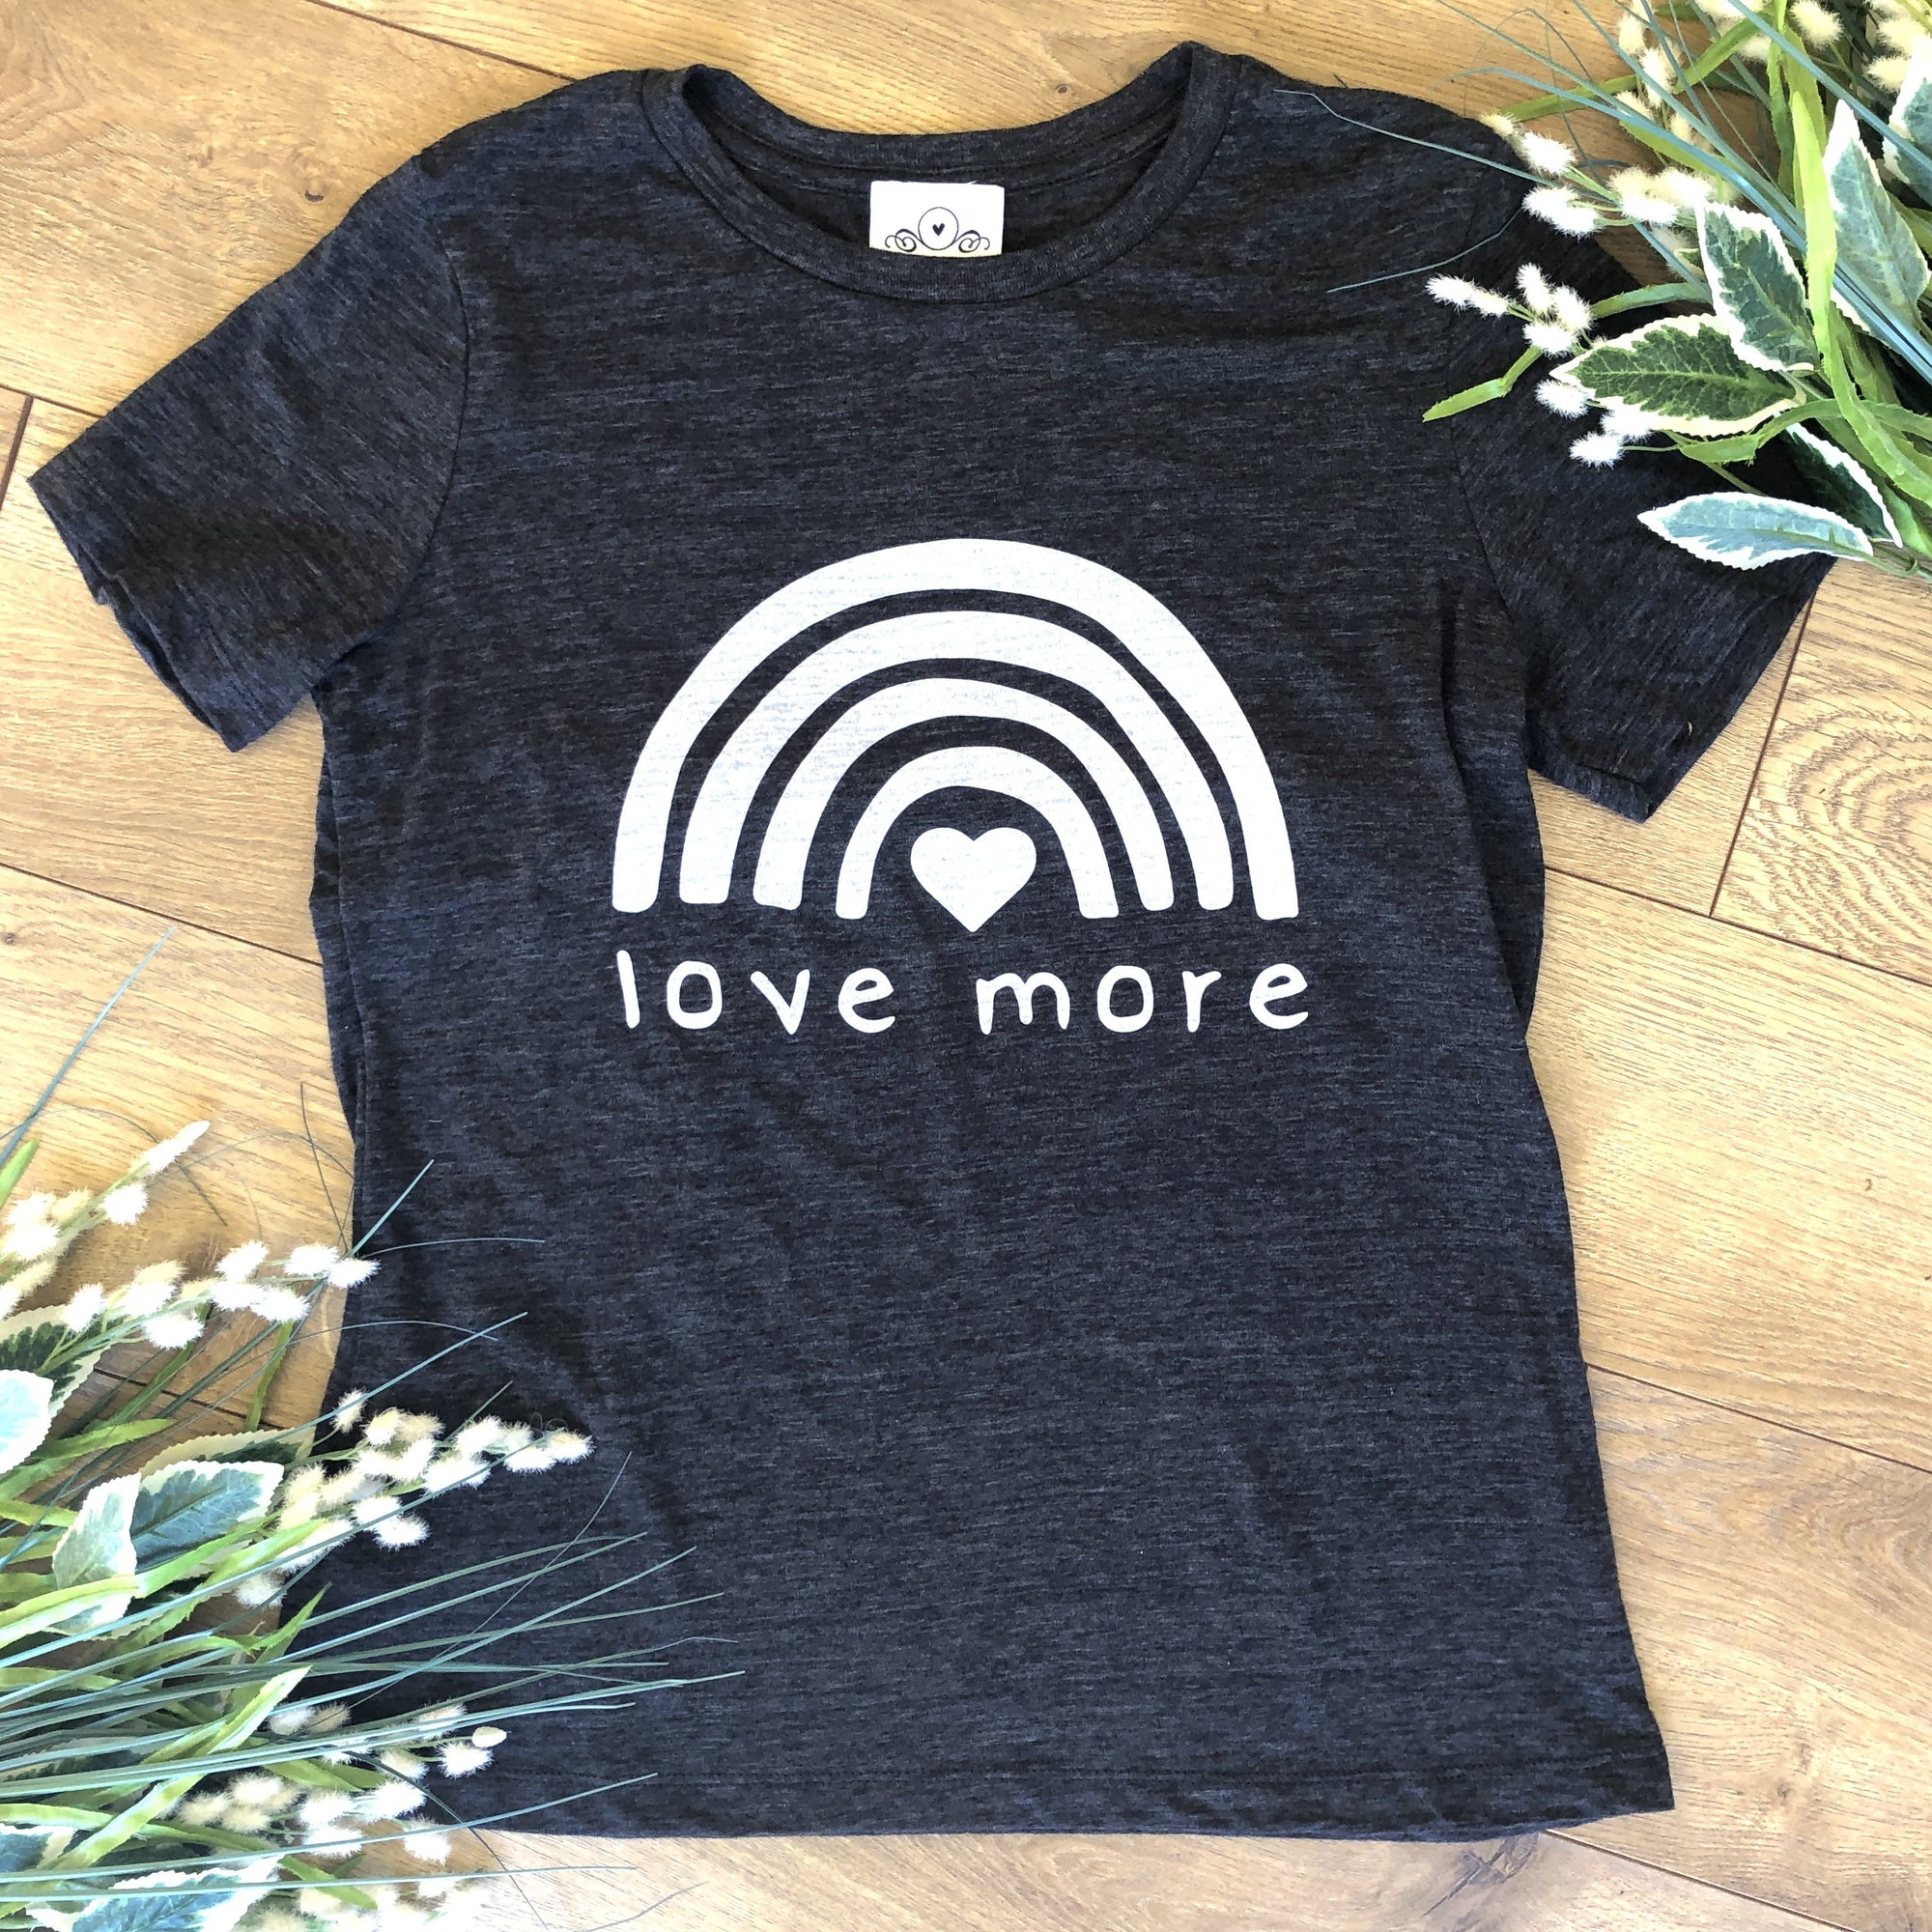 Loungewear T-Shirt Love More Charcoal Grey